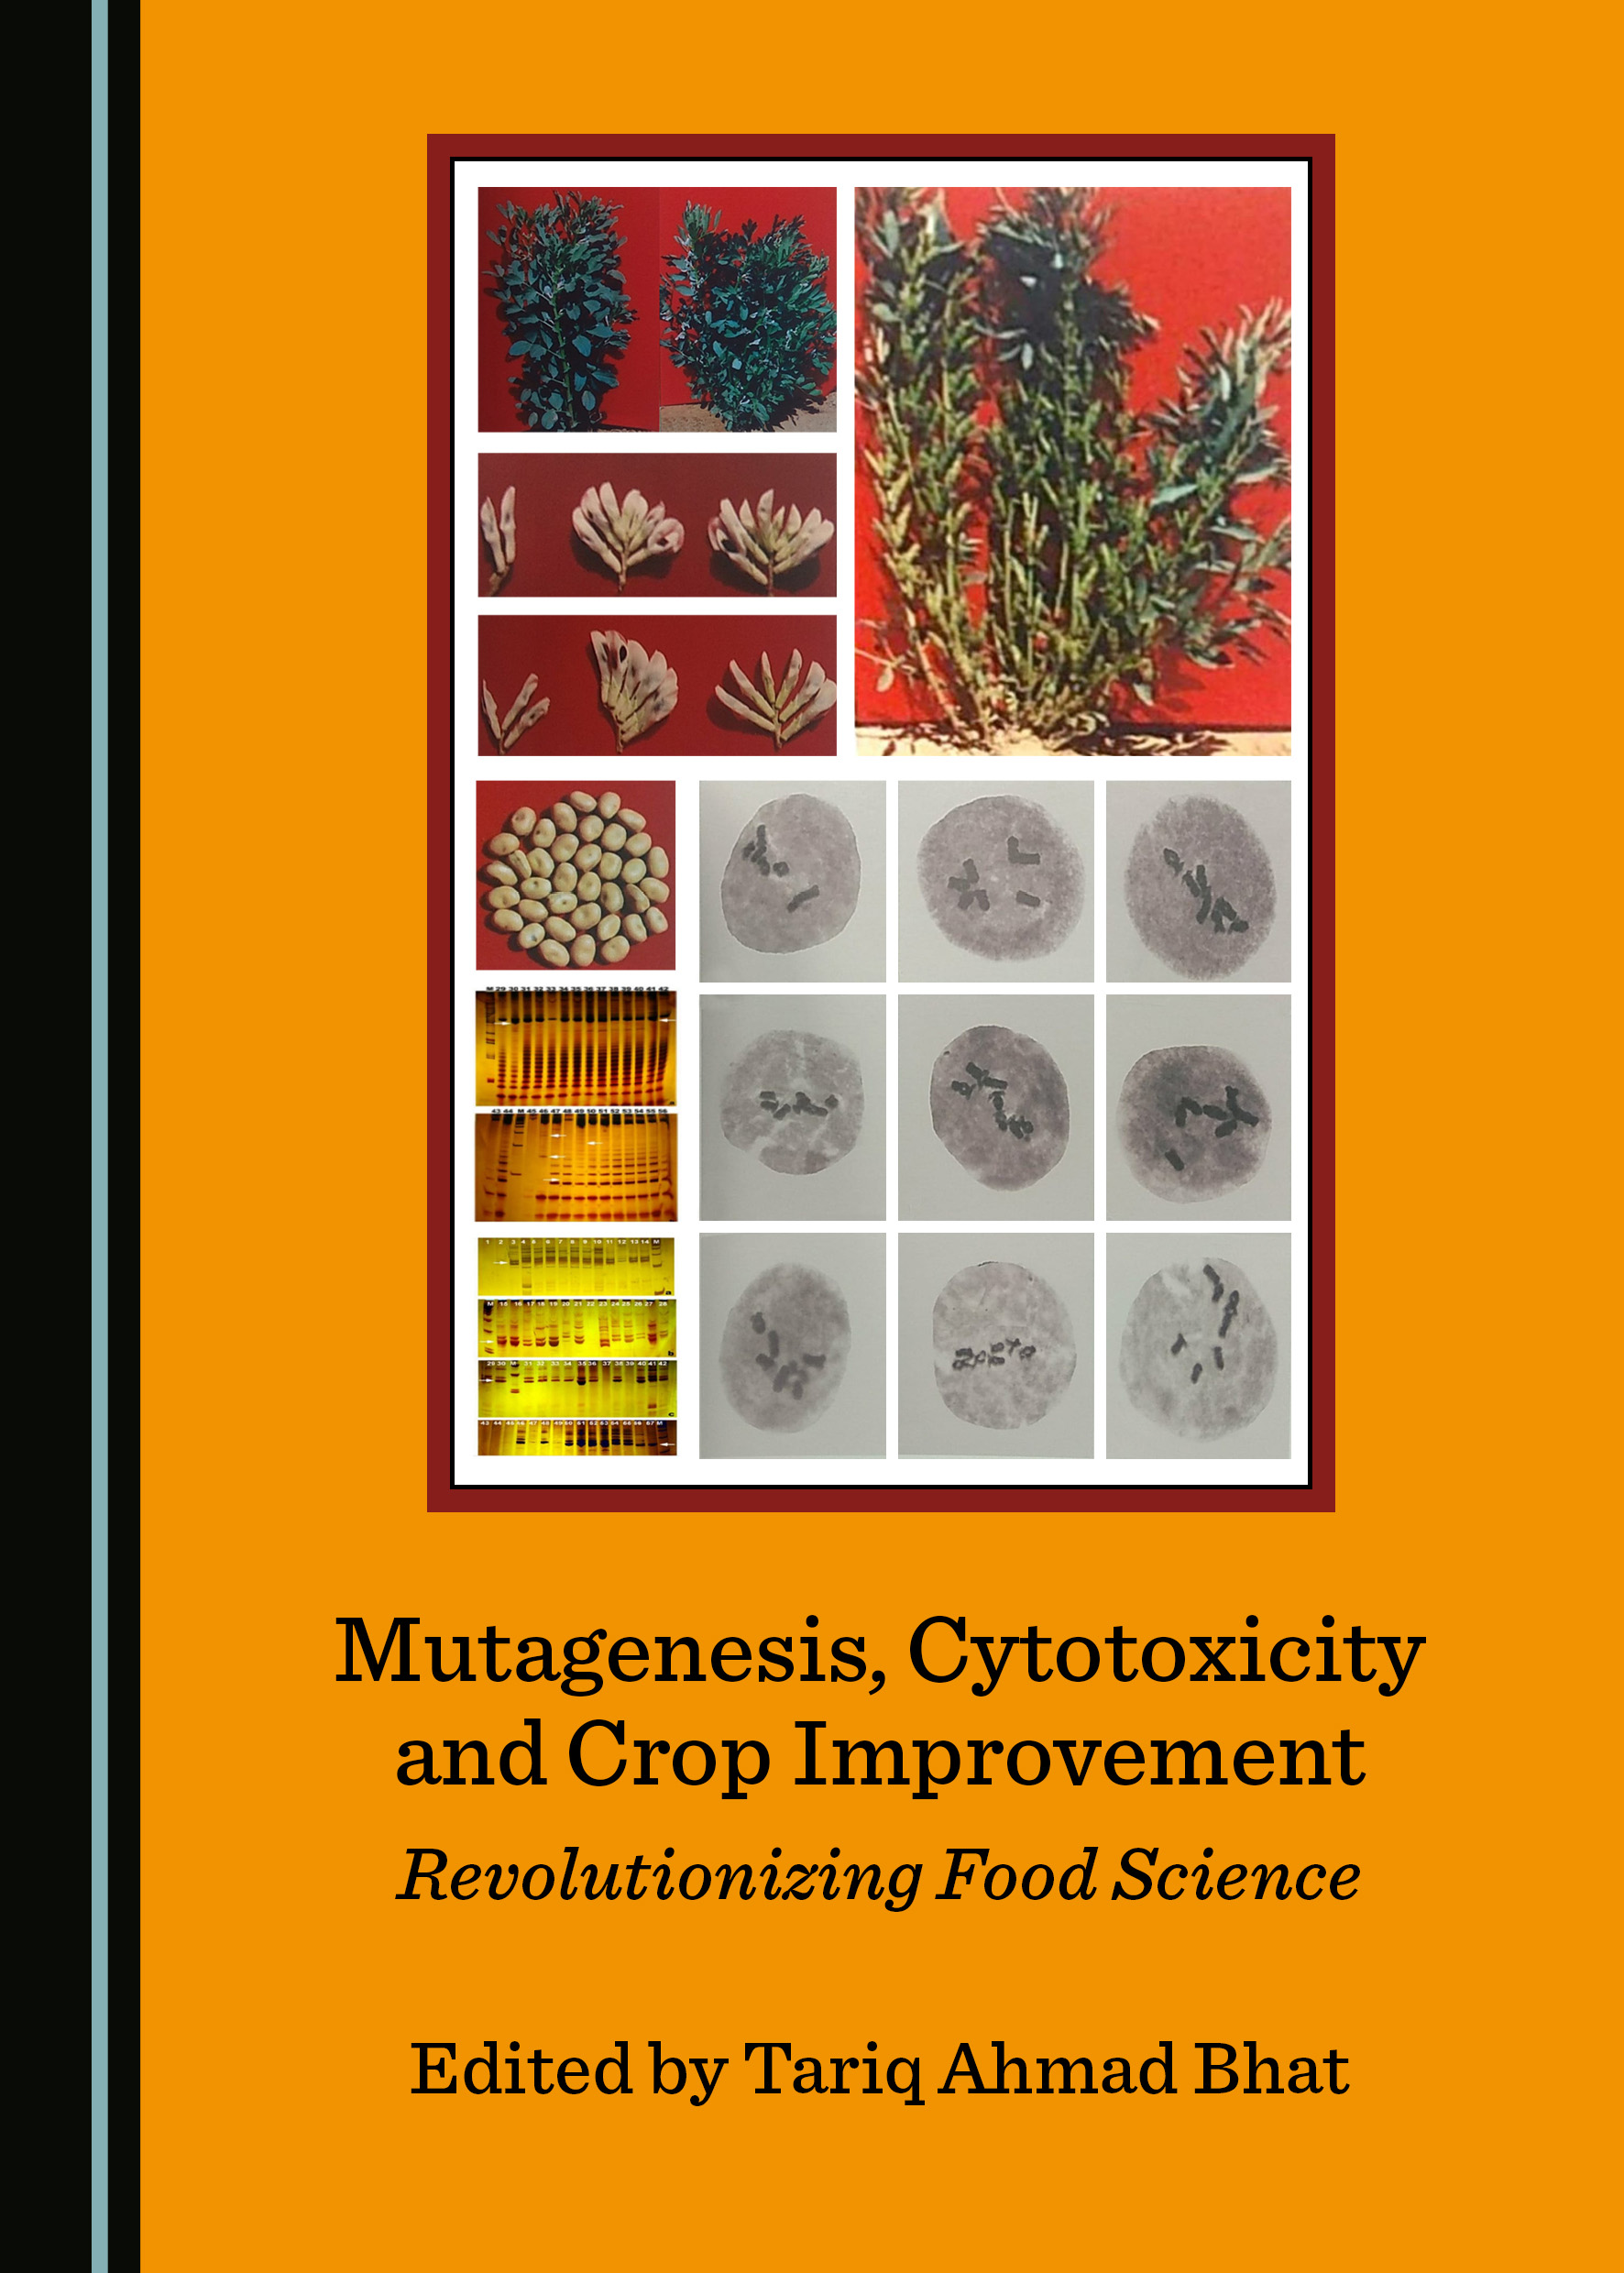 Mutagenesis, Cytotoxicity and Crop Improvement: Revolutionizing Food Science